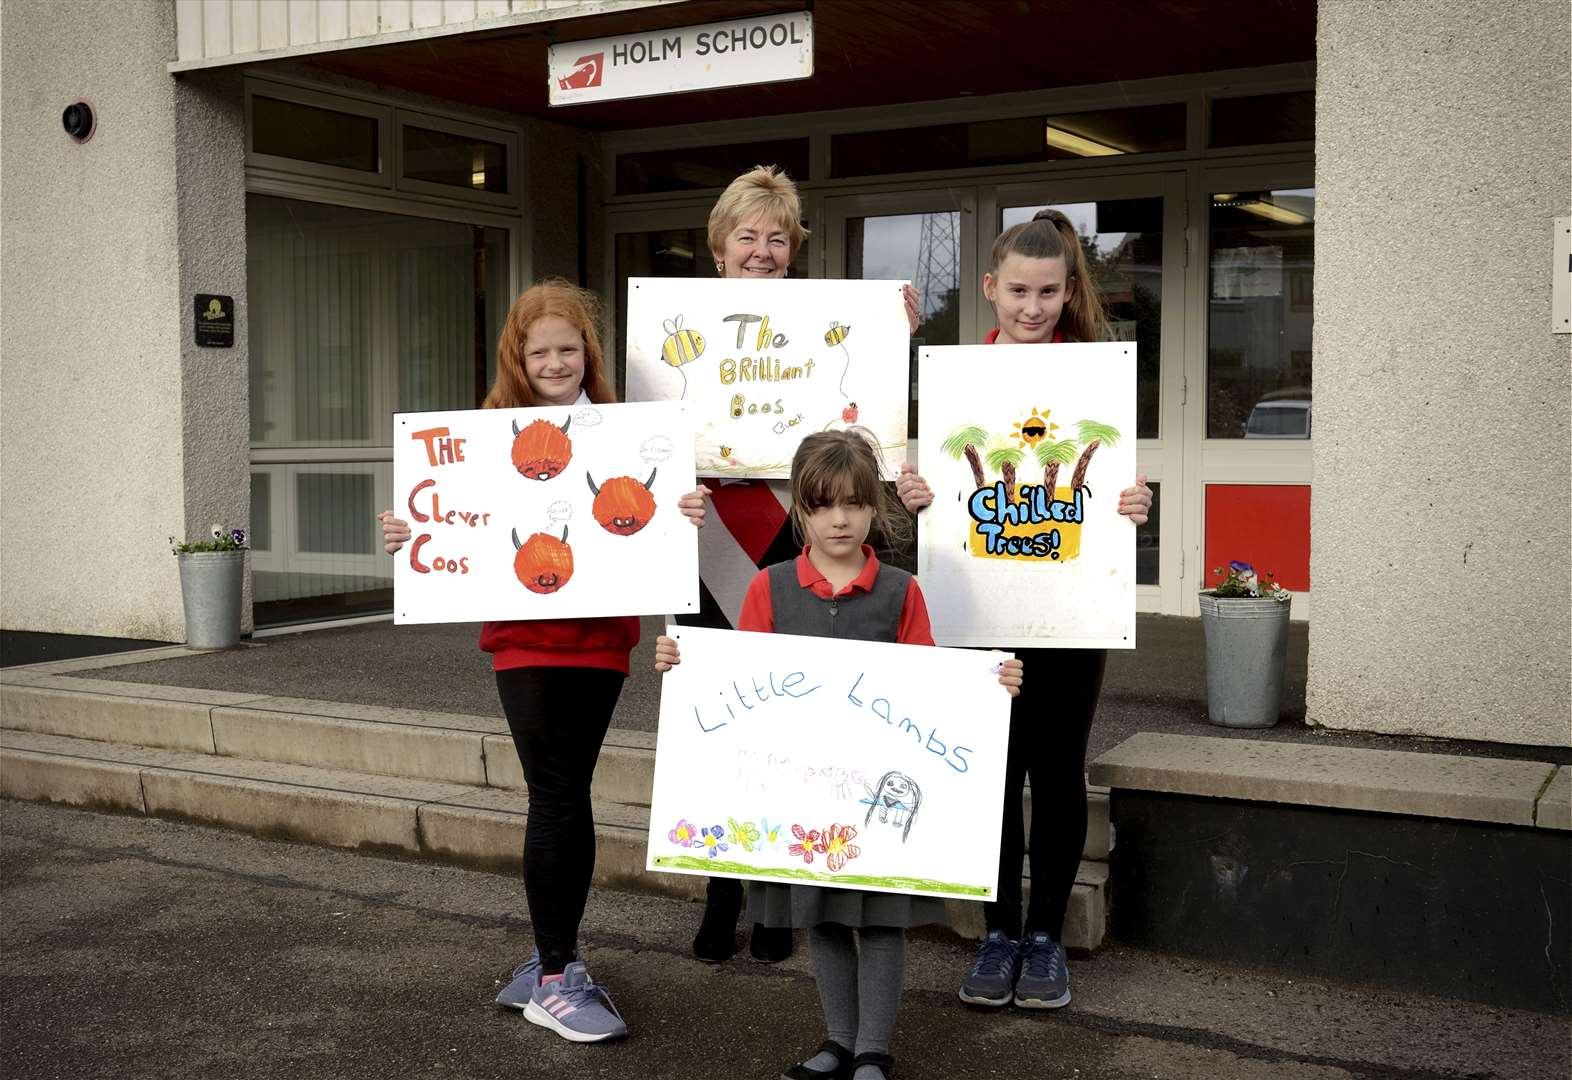 Inverness pupils design signs to spruce up school